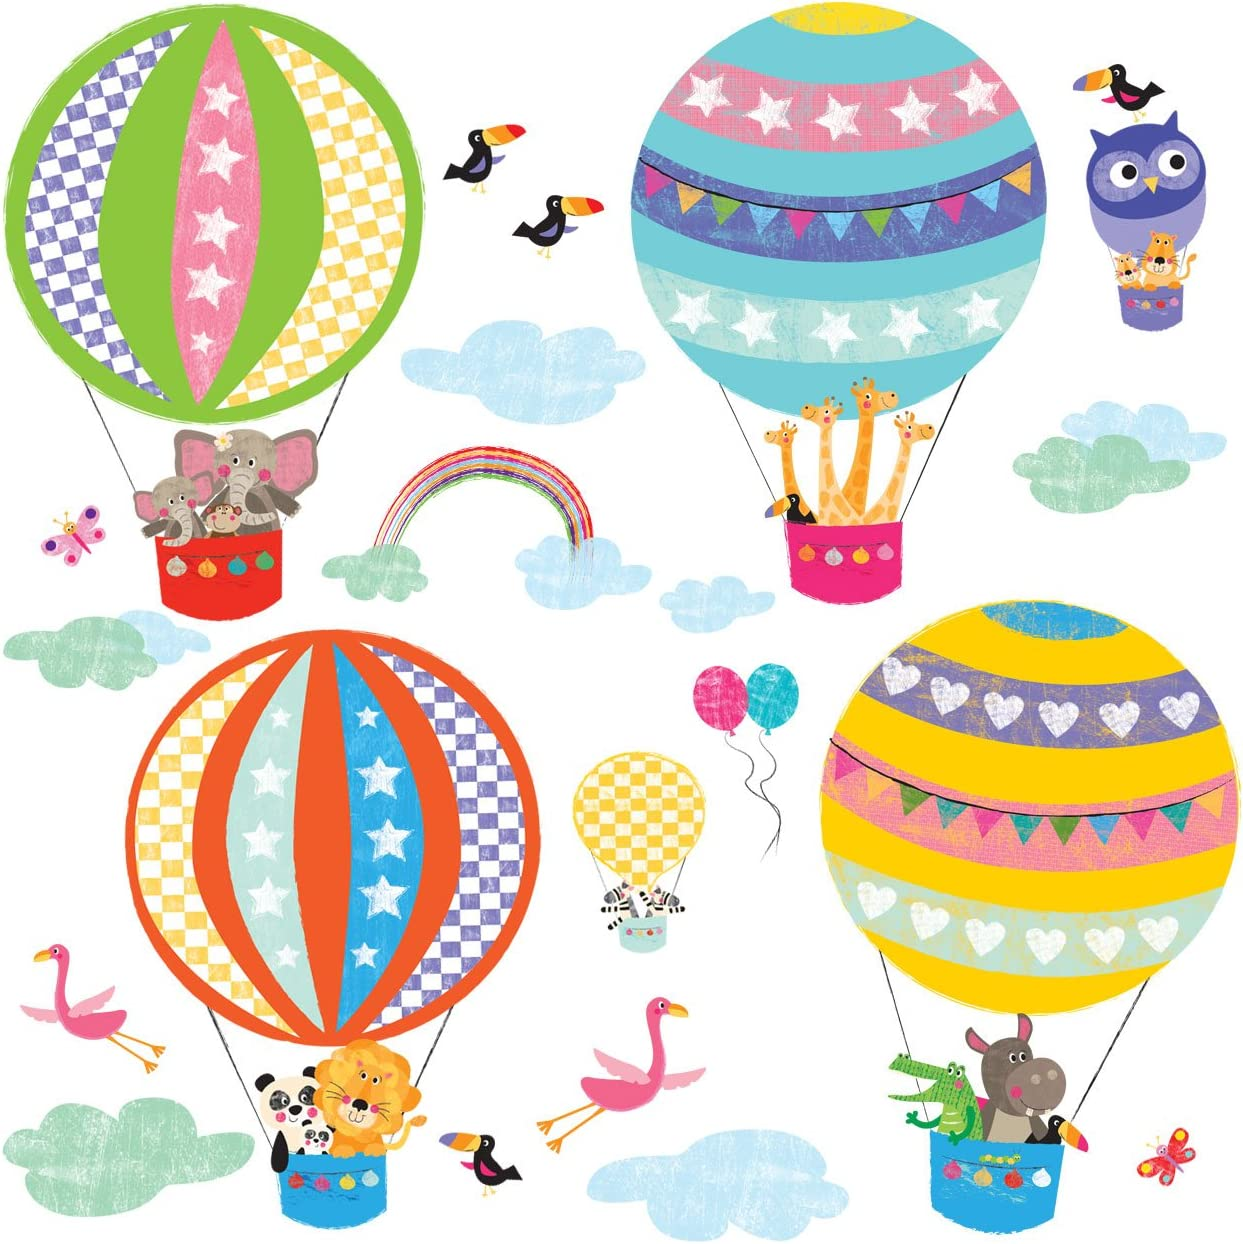 DECOWALL DA-1710B Hot Air Balloon Animals Kids Wall Stickers Wall Decals Peel and Stick Removable Wall Stickers for Kids Nursery Bedroom Living Room décor